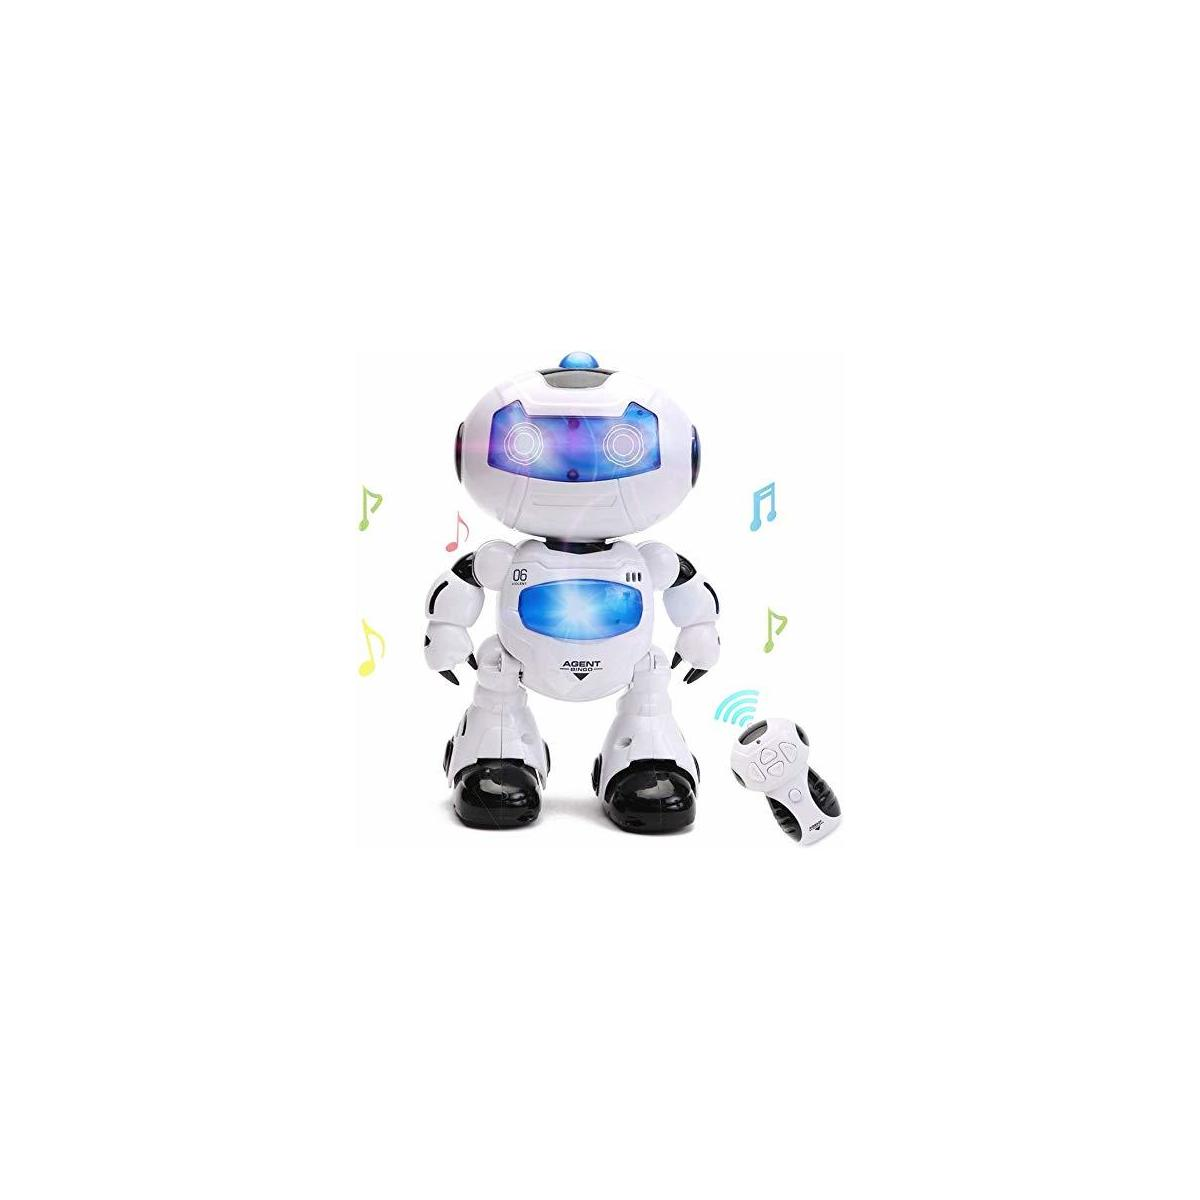 HANMUN Electronic RC Robot Learning Toys Xq16006 Toddler Dancing Remote Control Robot Toys with Music Lights